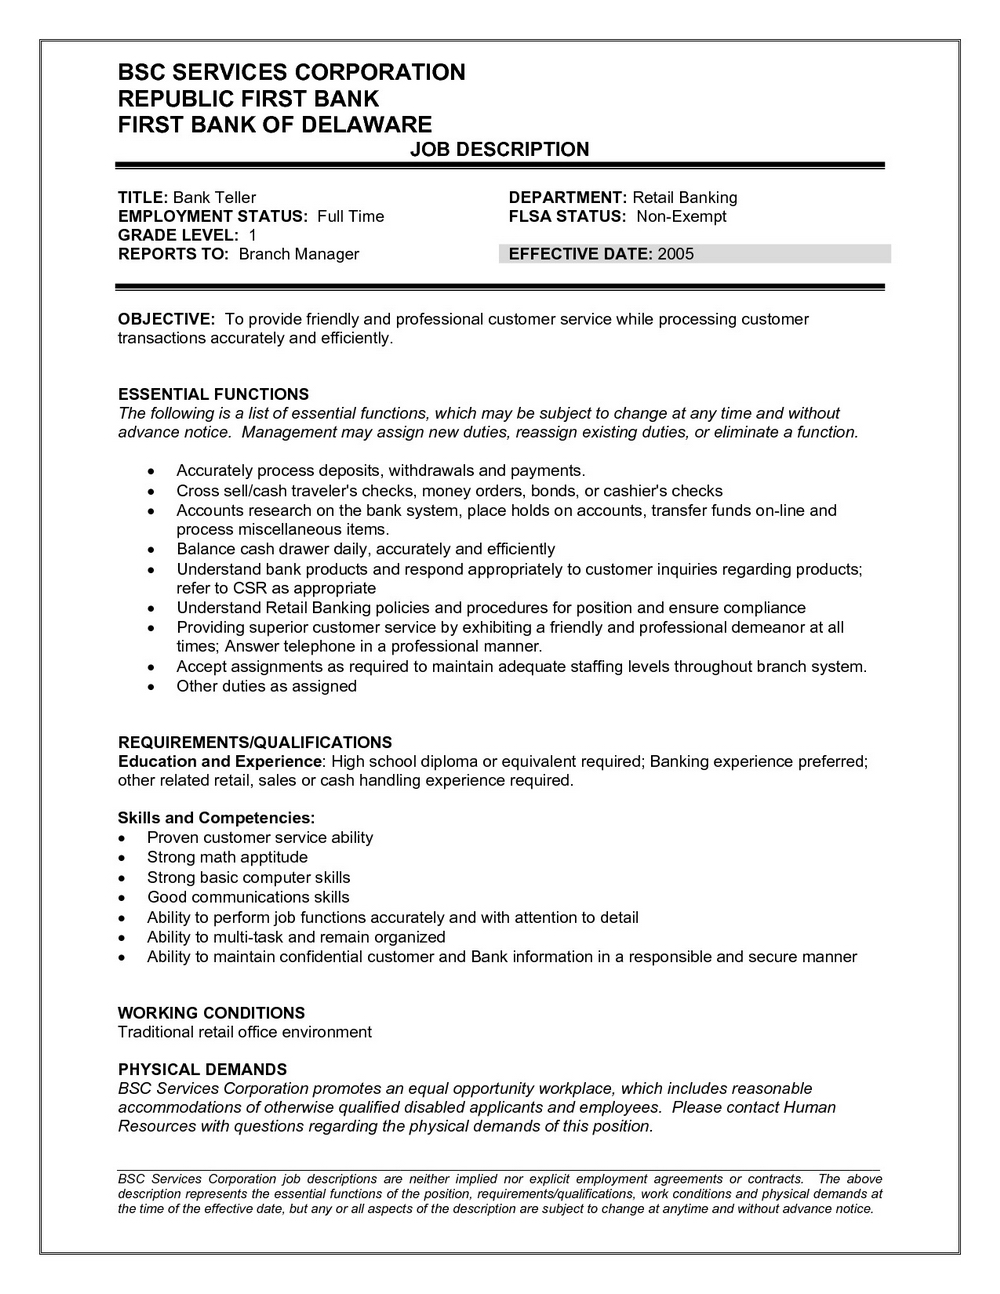 Resume Examples For Teller Position